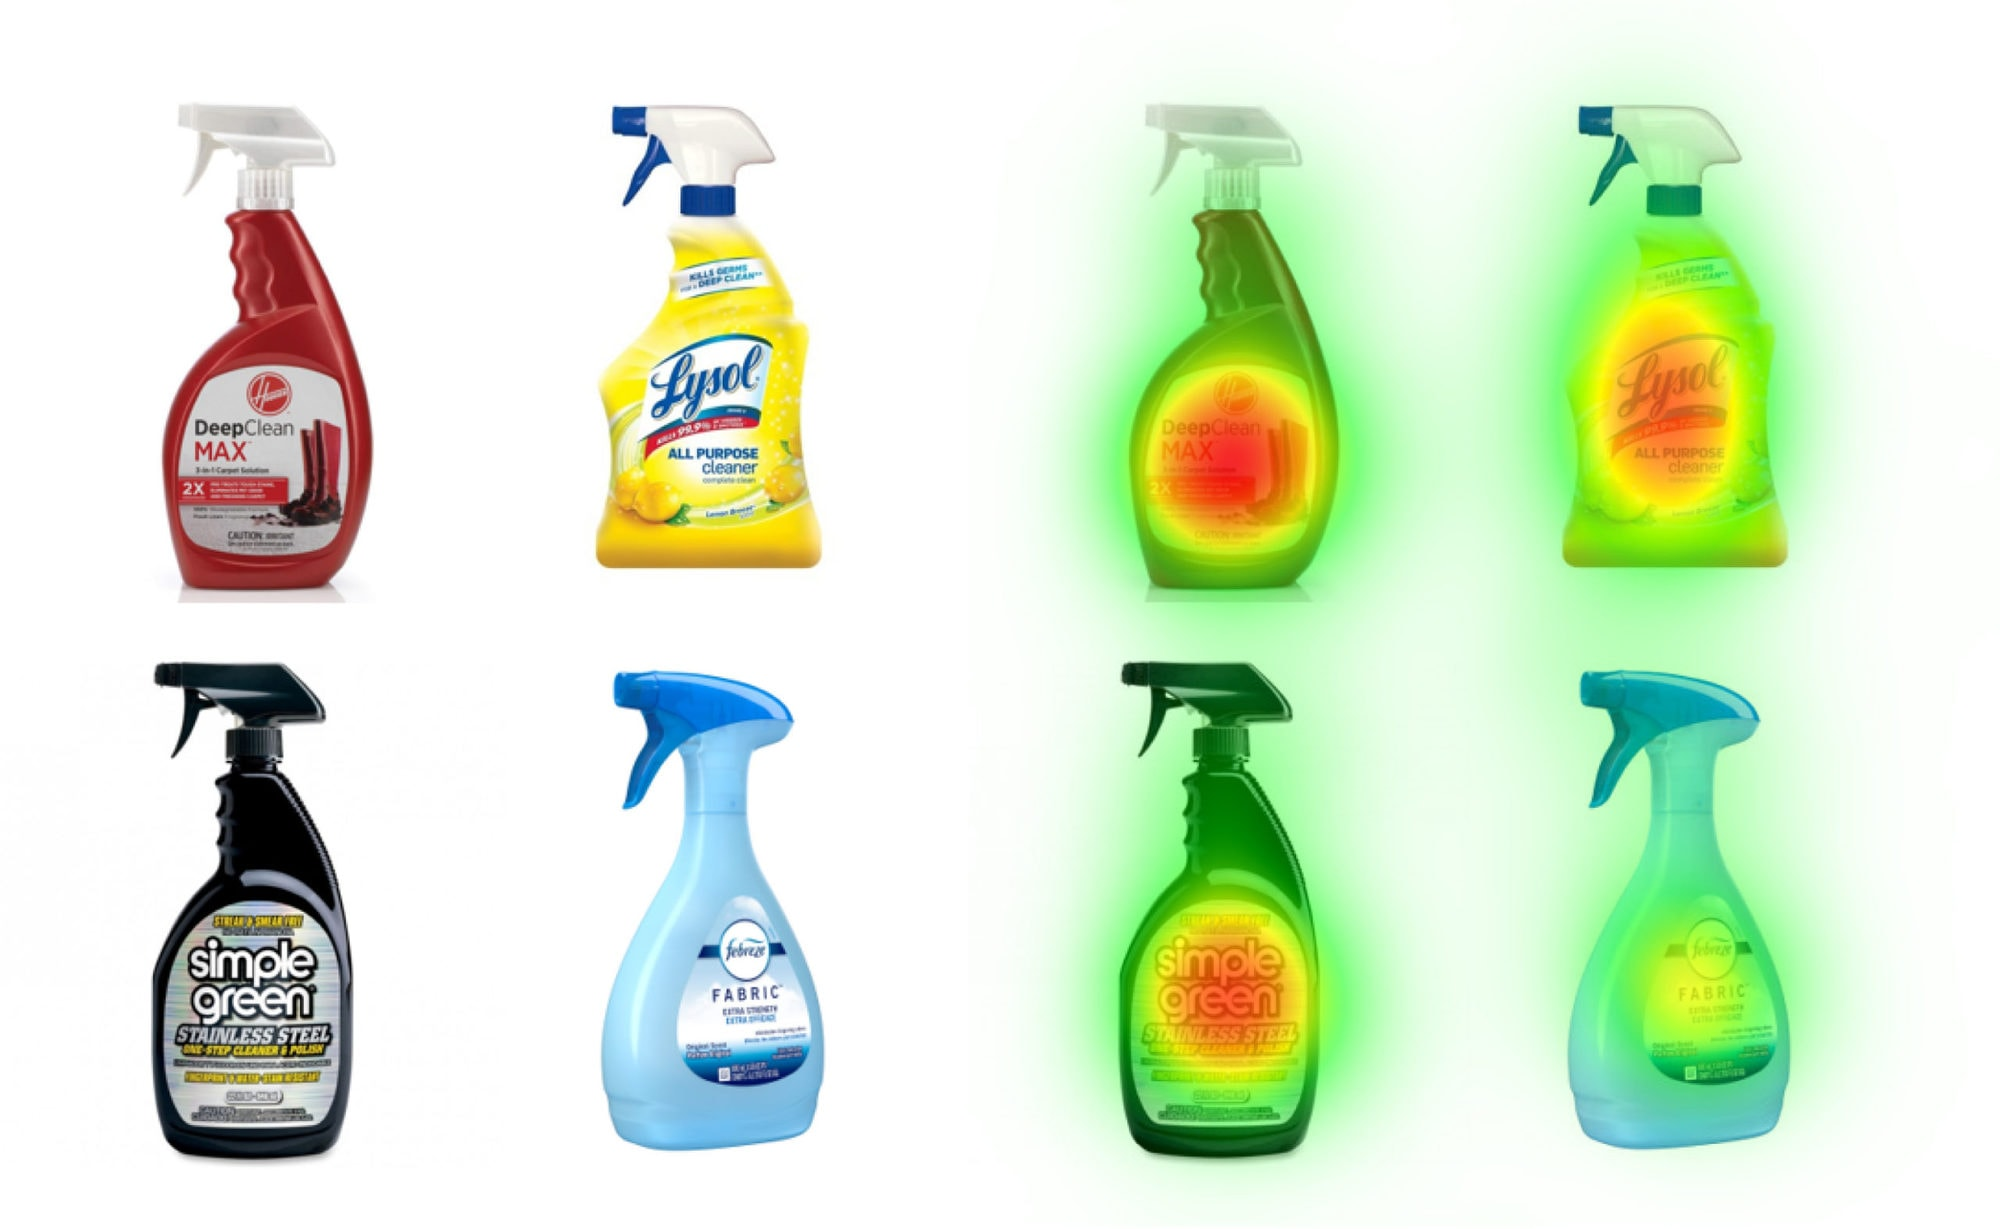 Cleaner bottles with the NeuroVision heatmap over them.